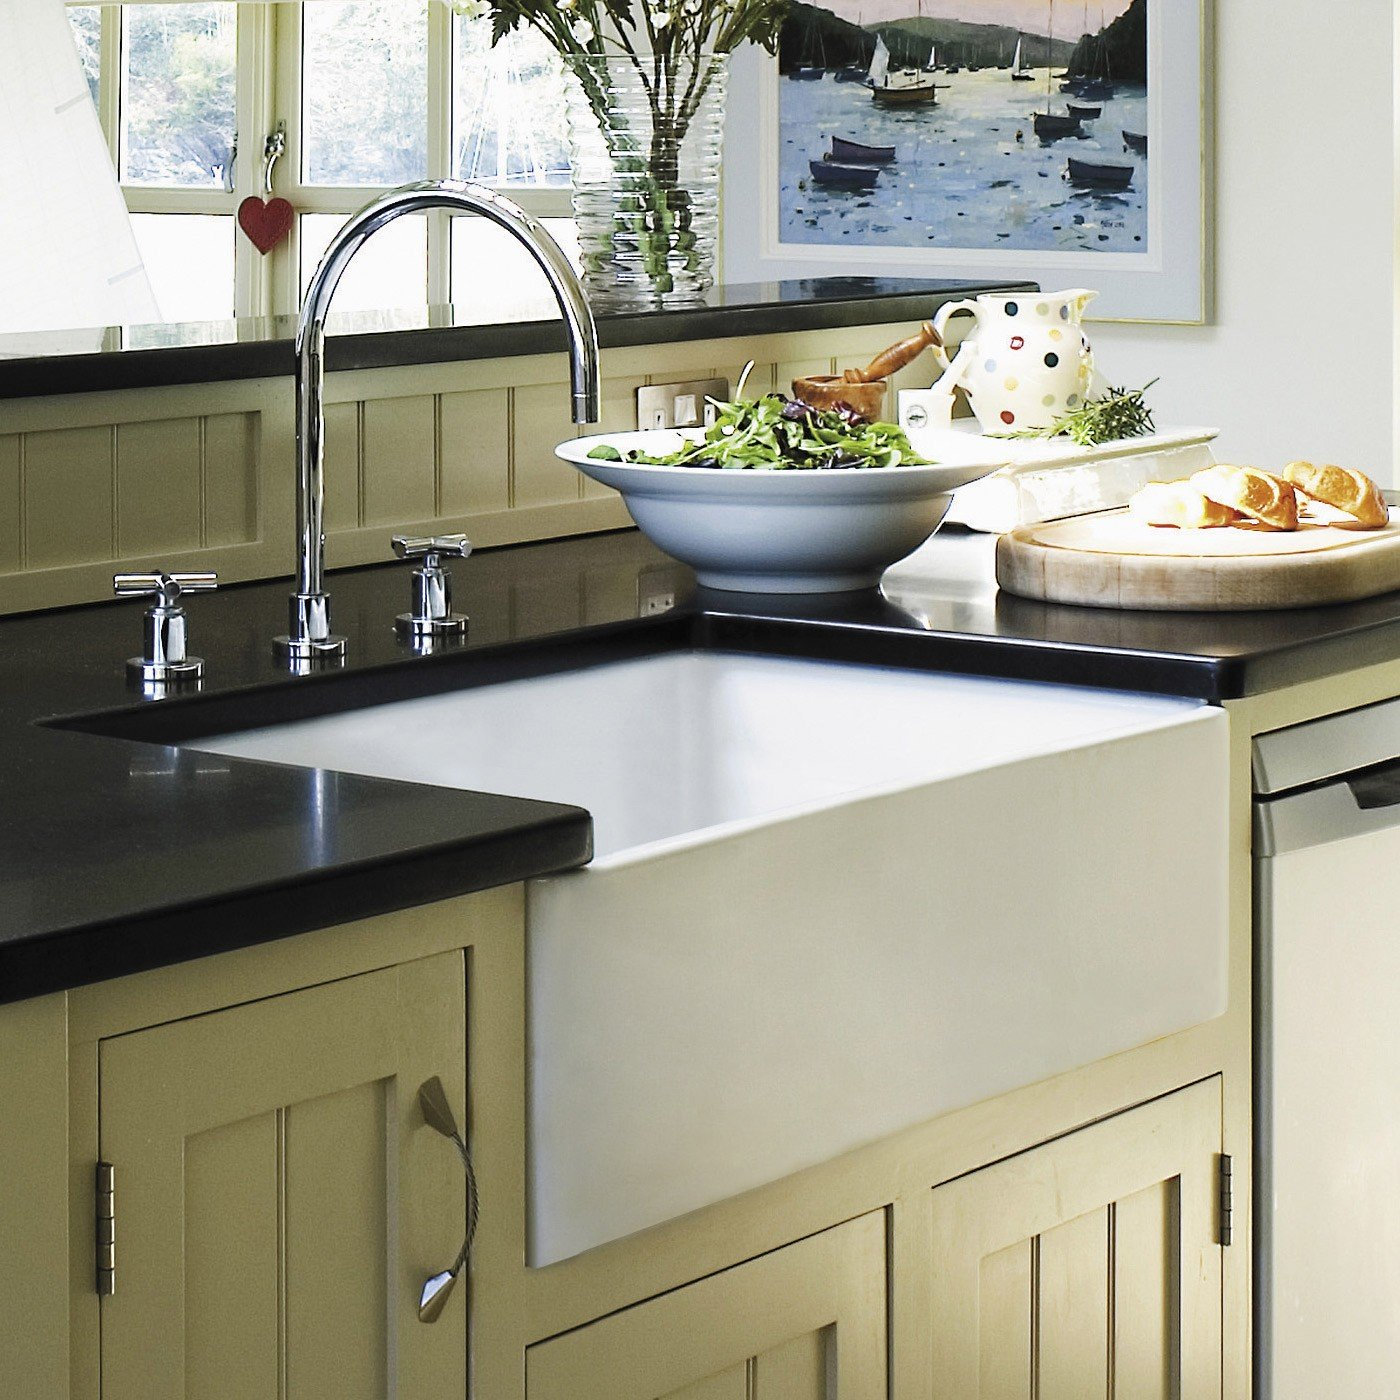 Belle Foret Farmhouse Sink Design And Inspirations Discover The Most Used Kitchen Appliance